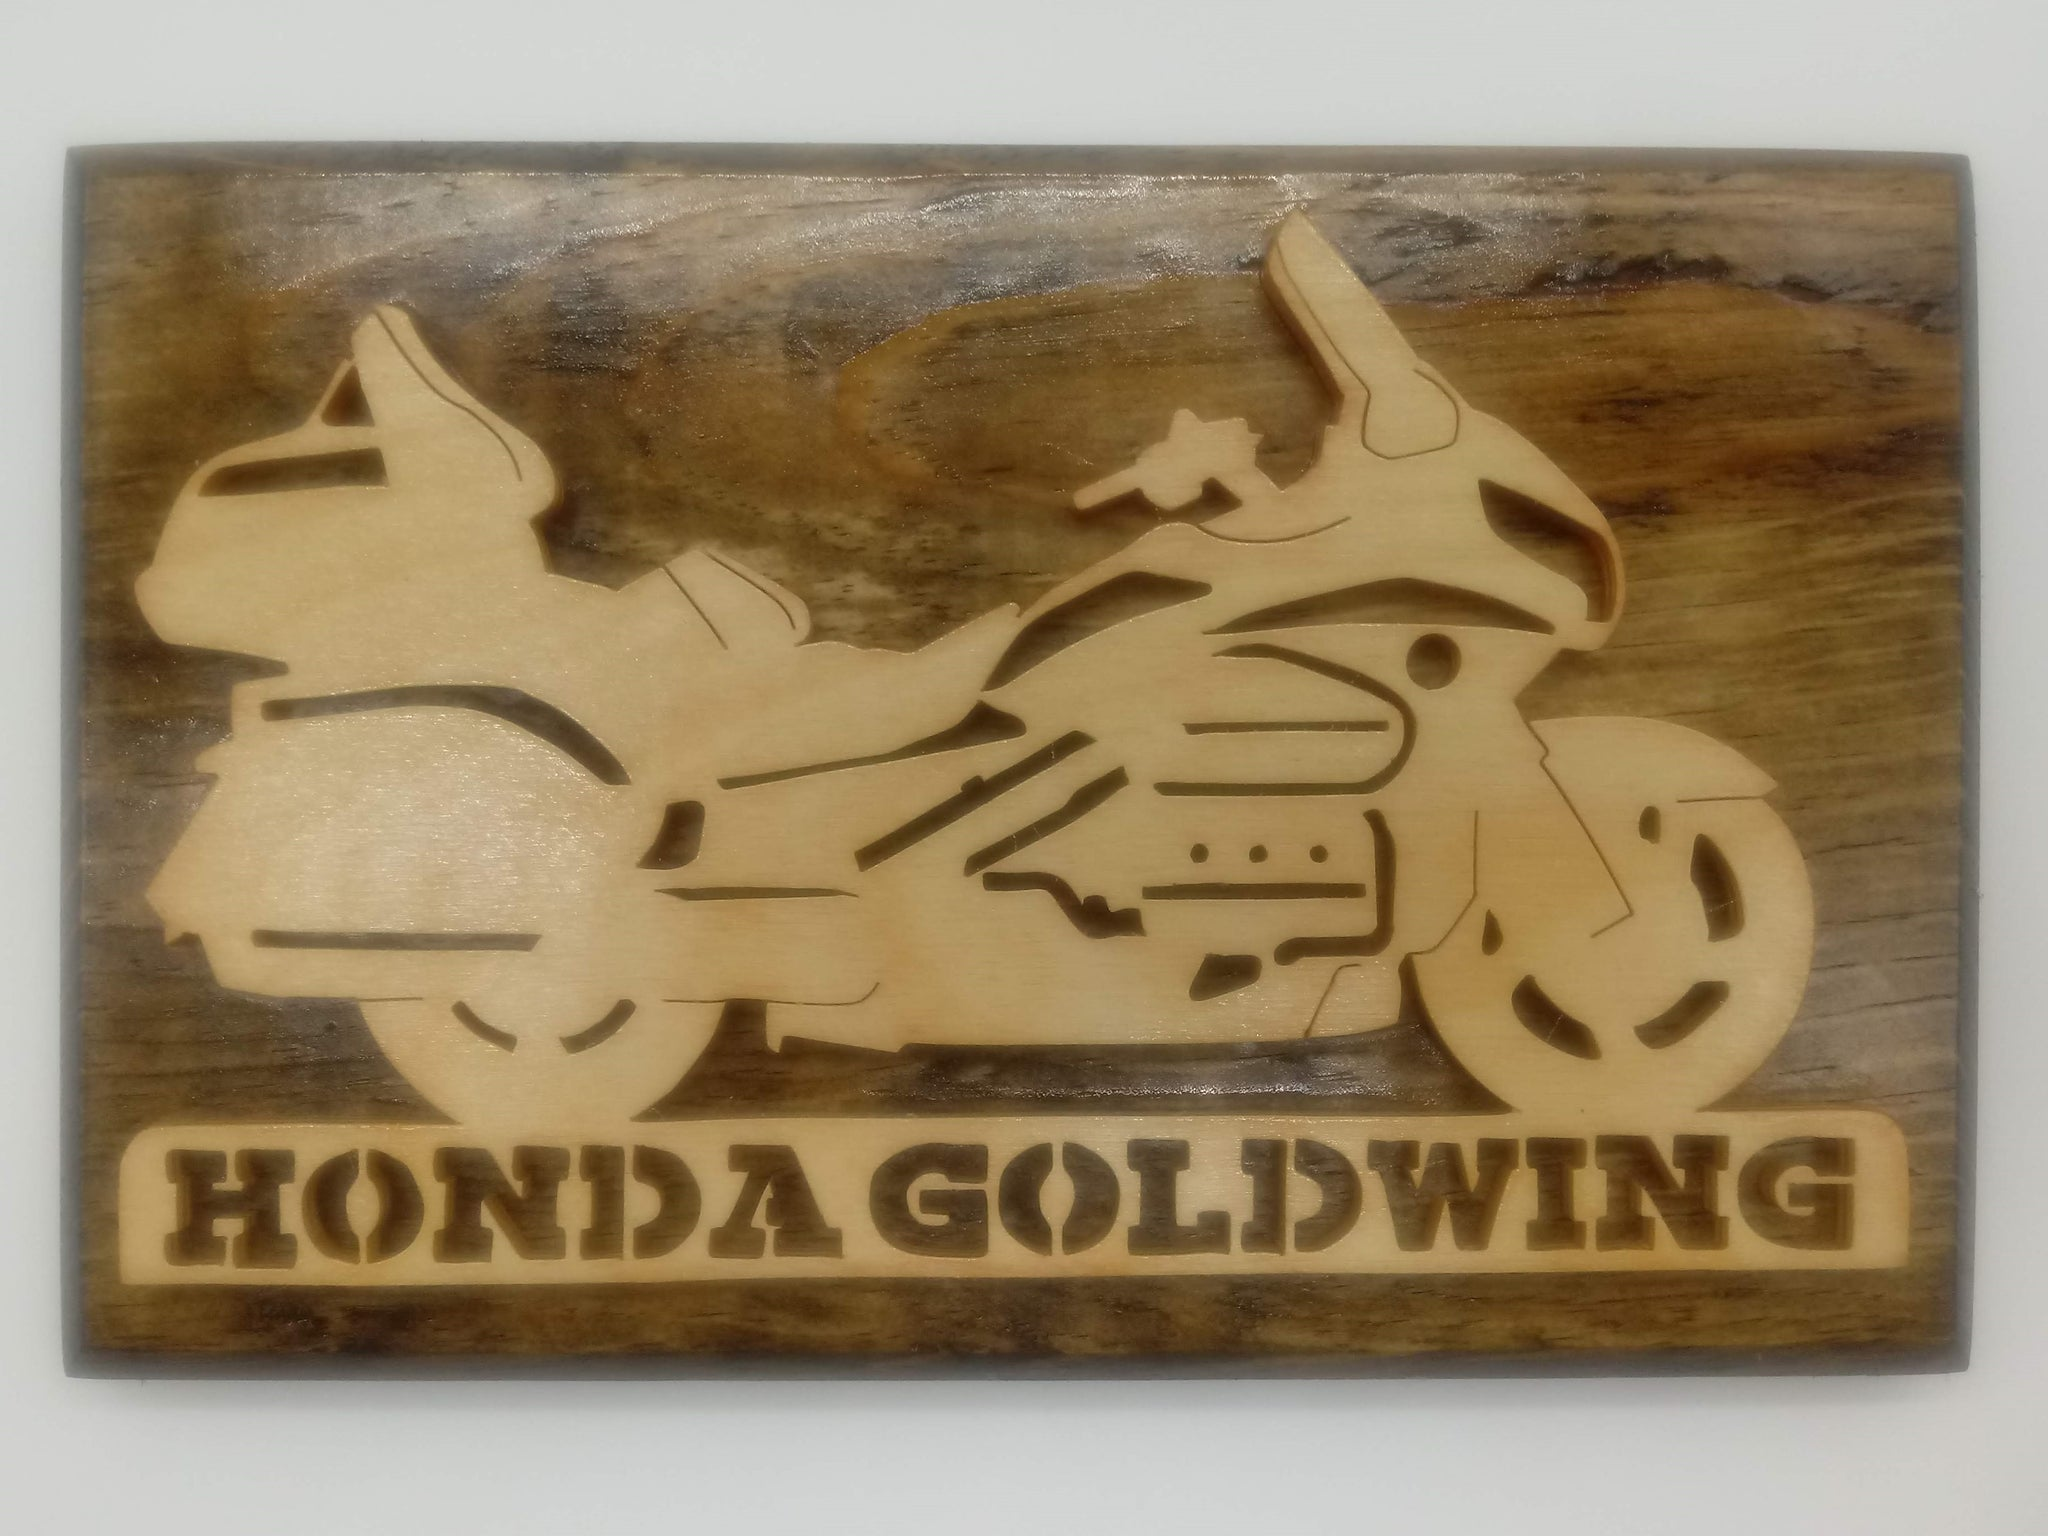 Honda Goldwing Motorcycle - Kripp's Kreations